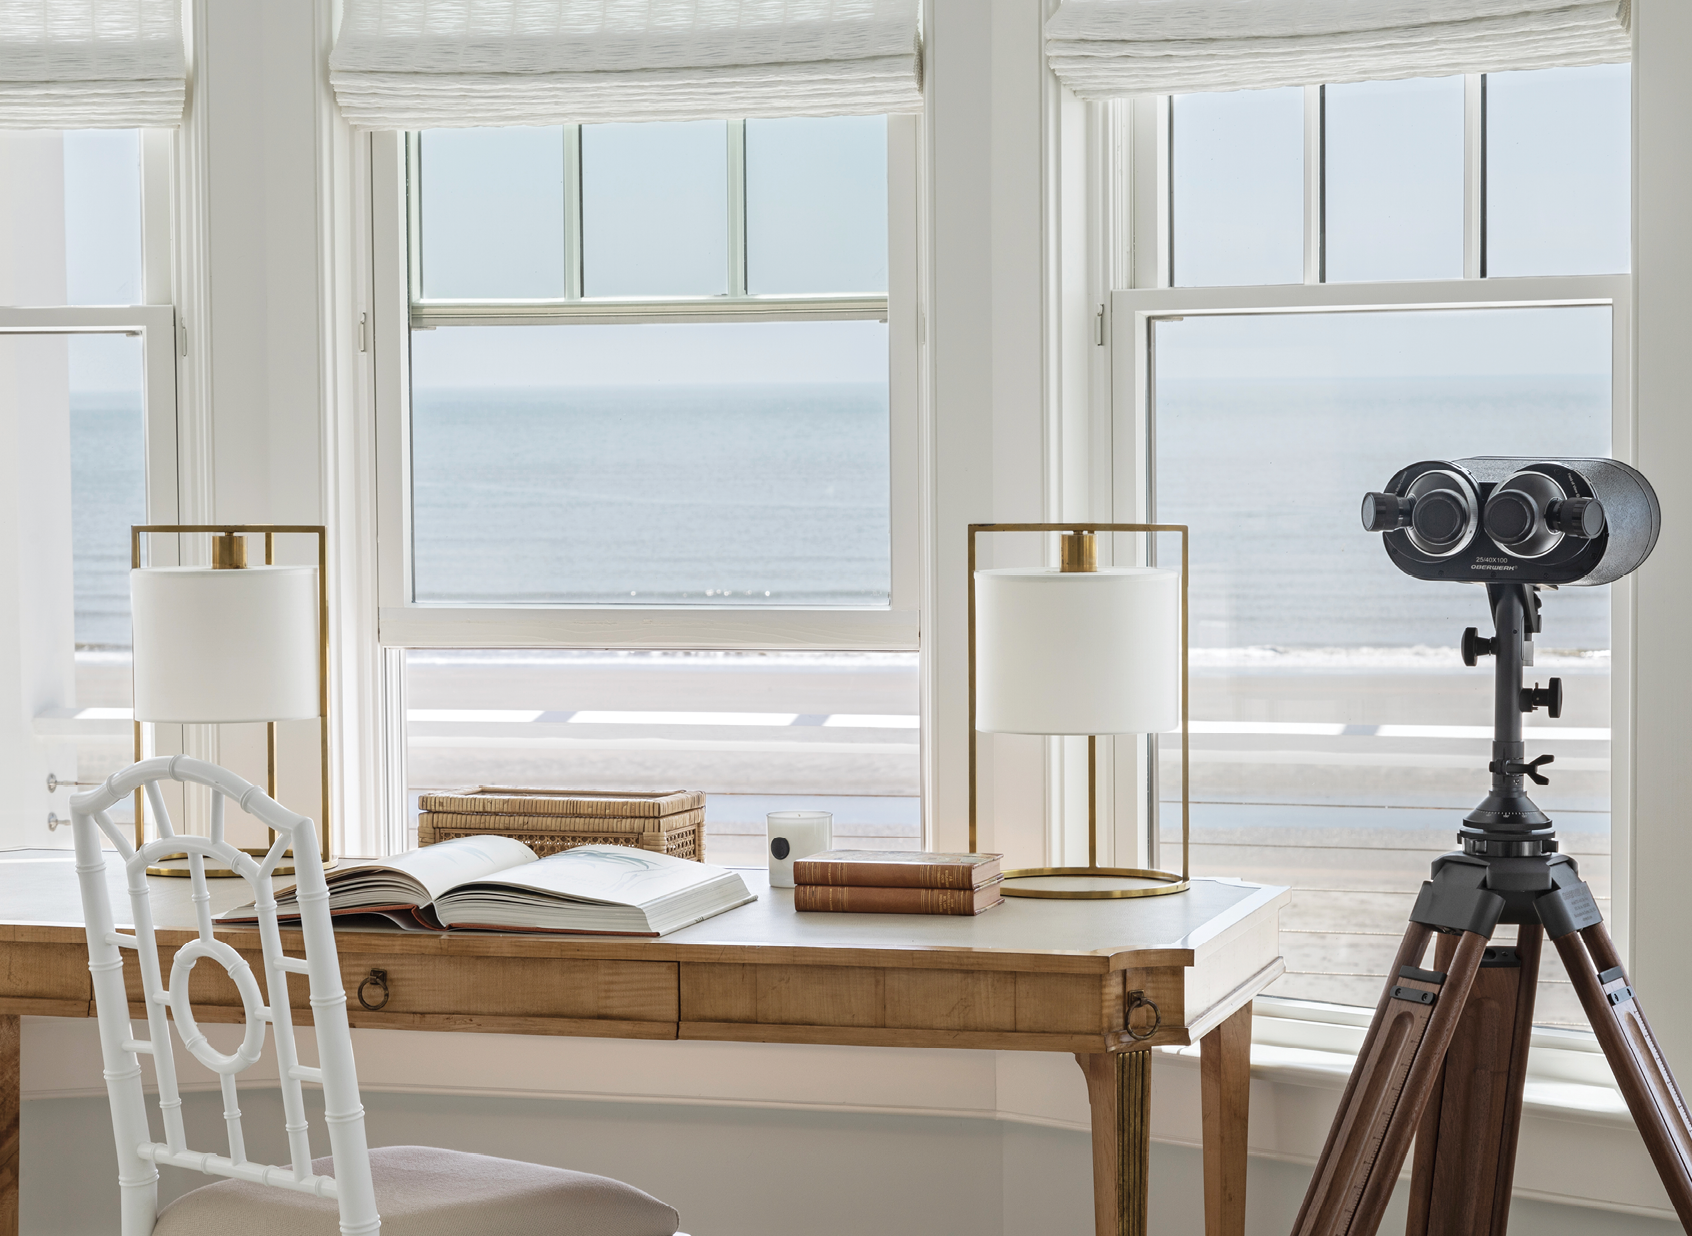 Tom's office—located just off the bedroom—boasts panoramic views of the IOP shoreline.